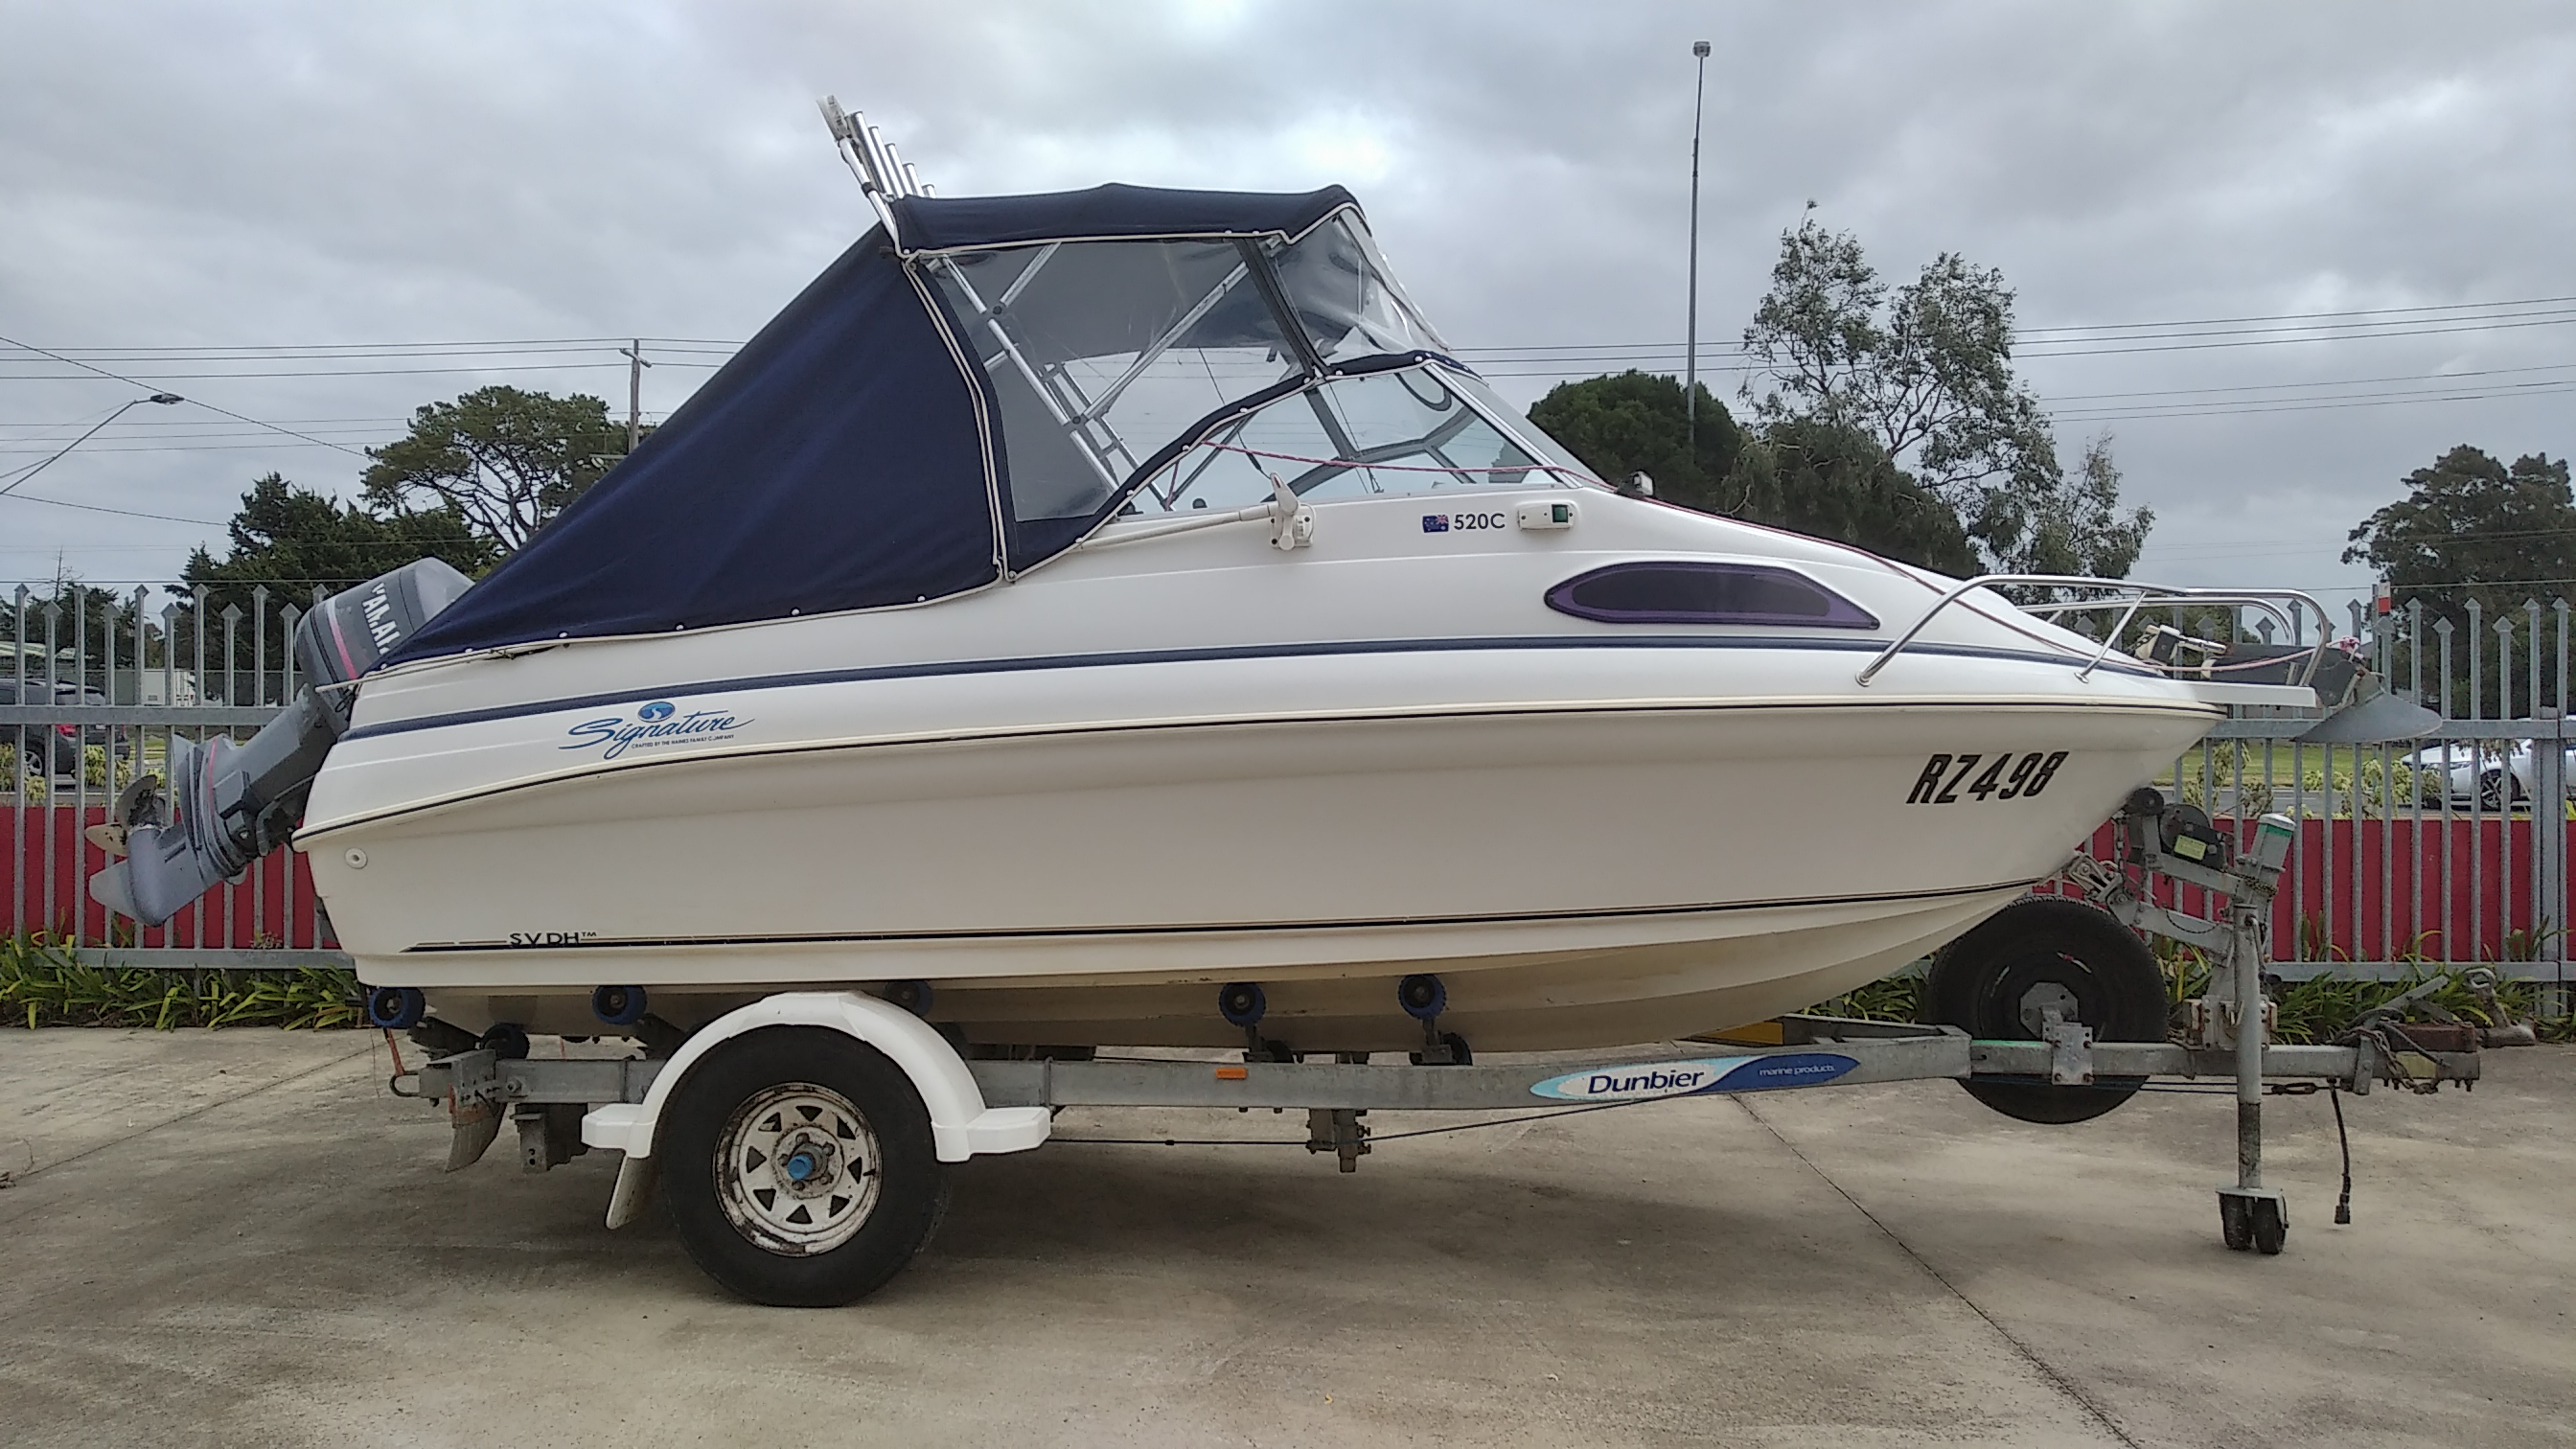 Haines Signature 520C Boat for Sale